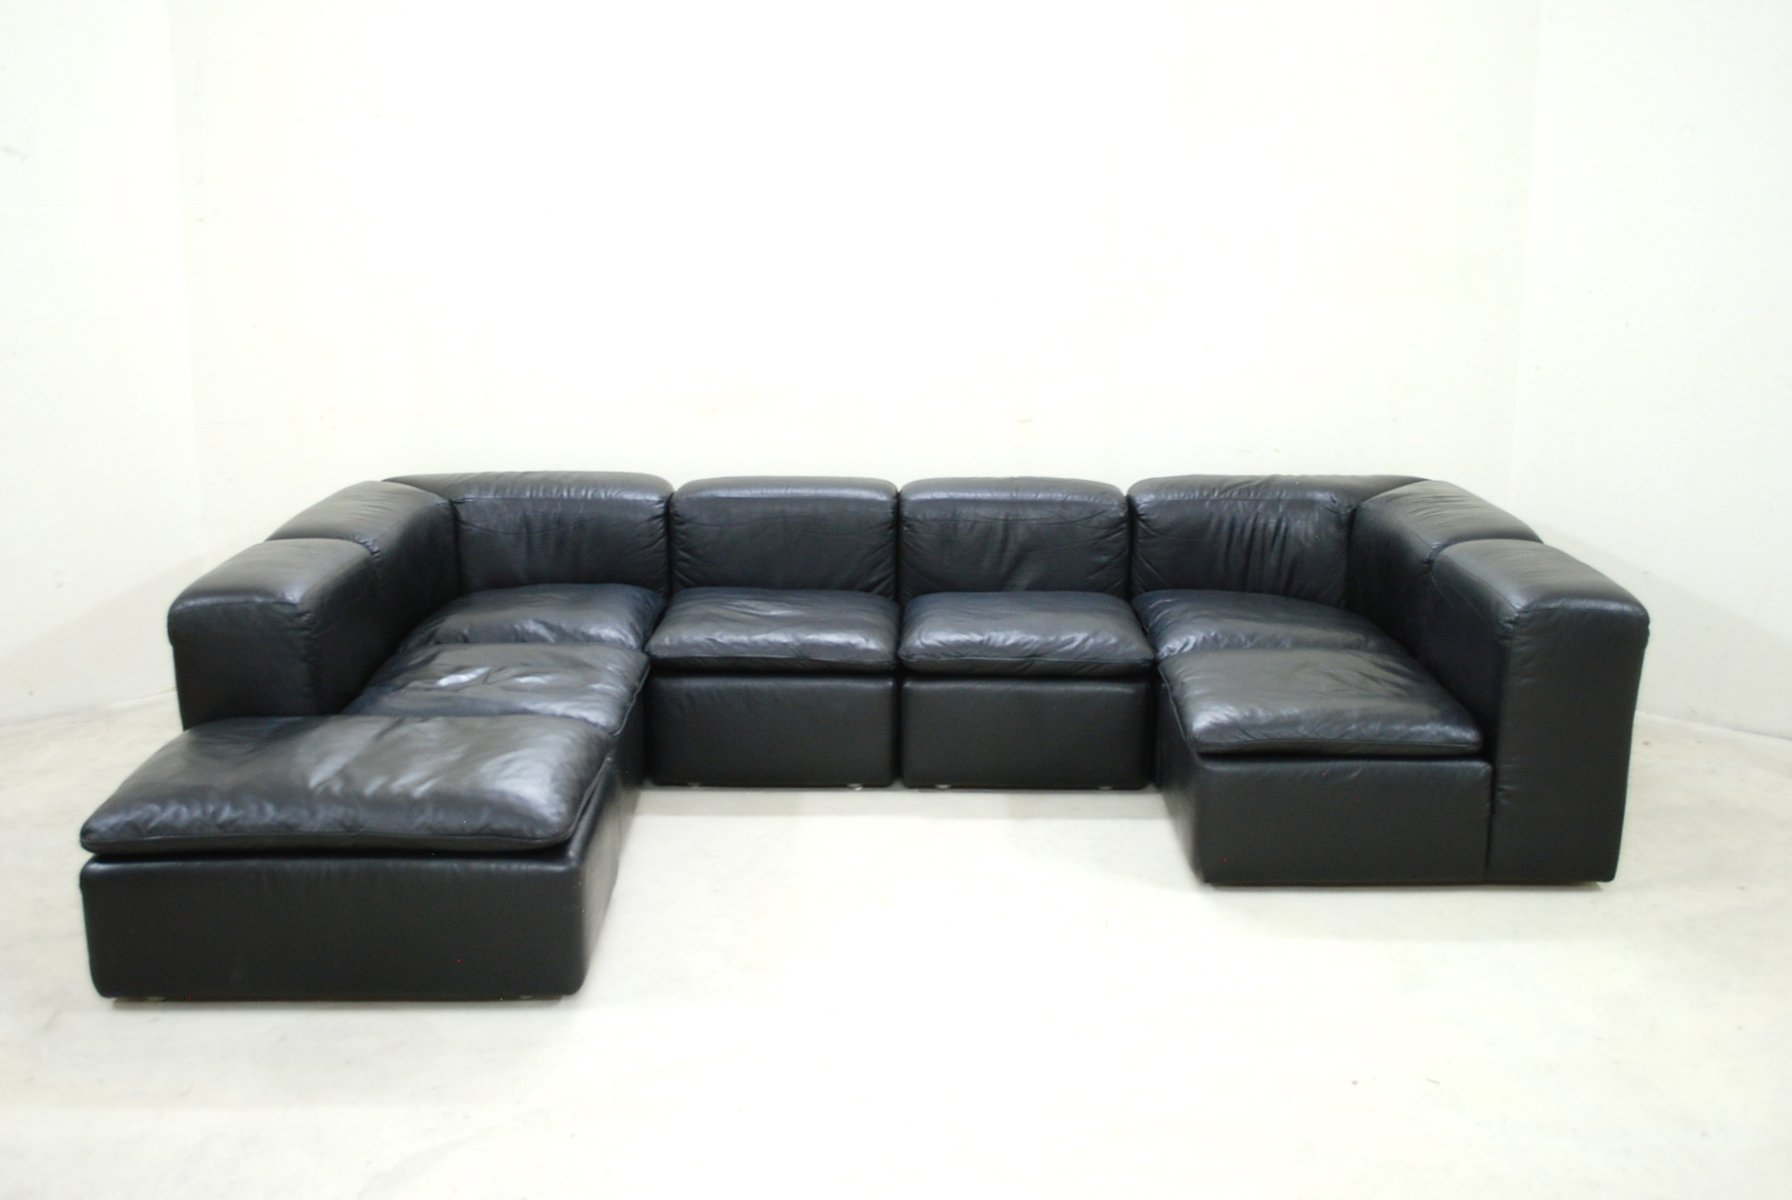 Cube Möbel Modular Black Cube Design Wk 550 Leather Sofa By Ernst Martin Dettinger For Wk Möbel